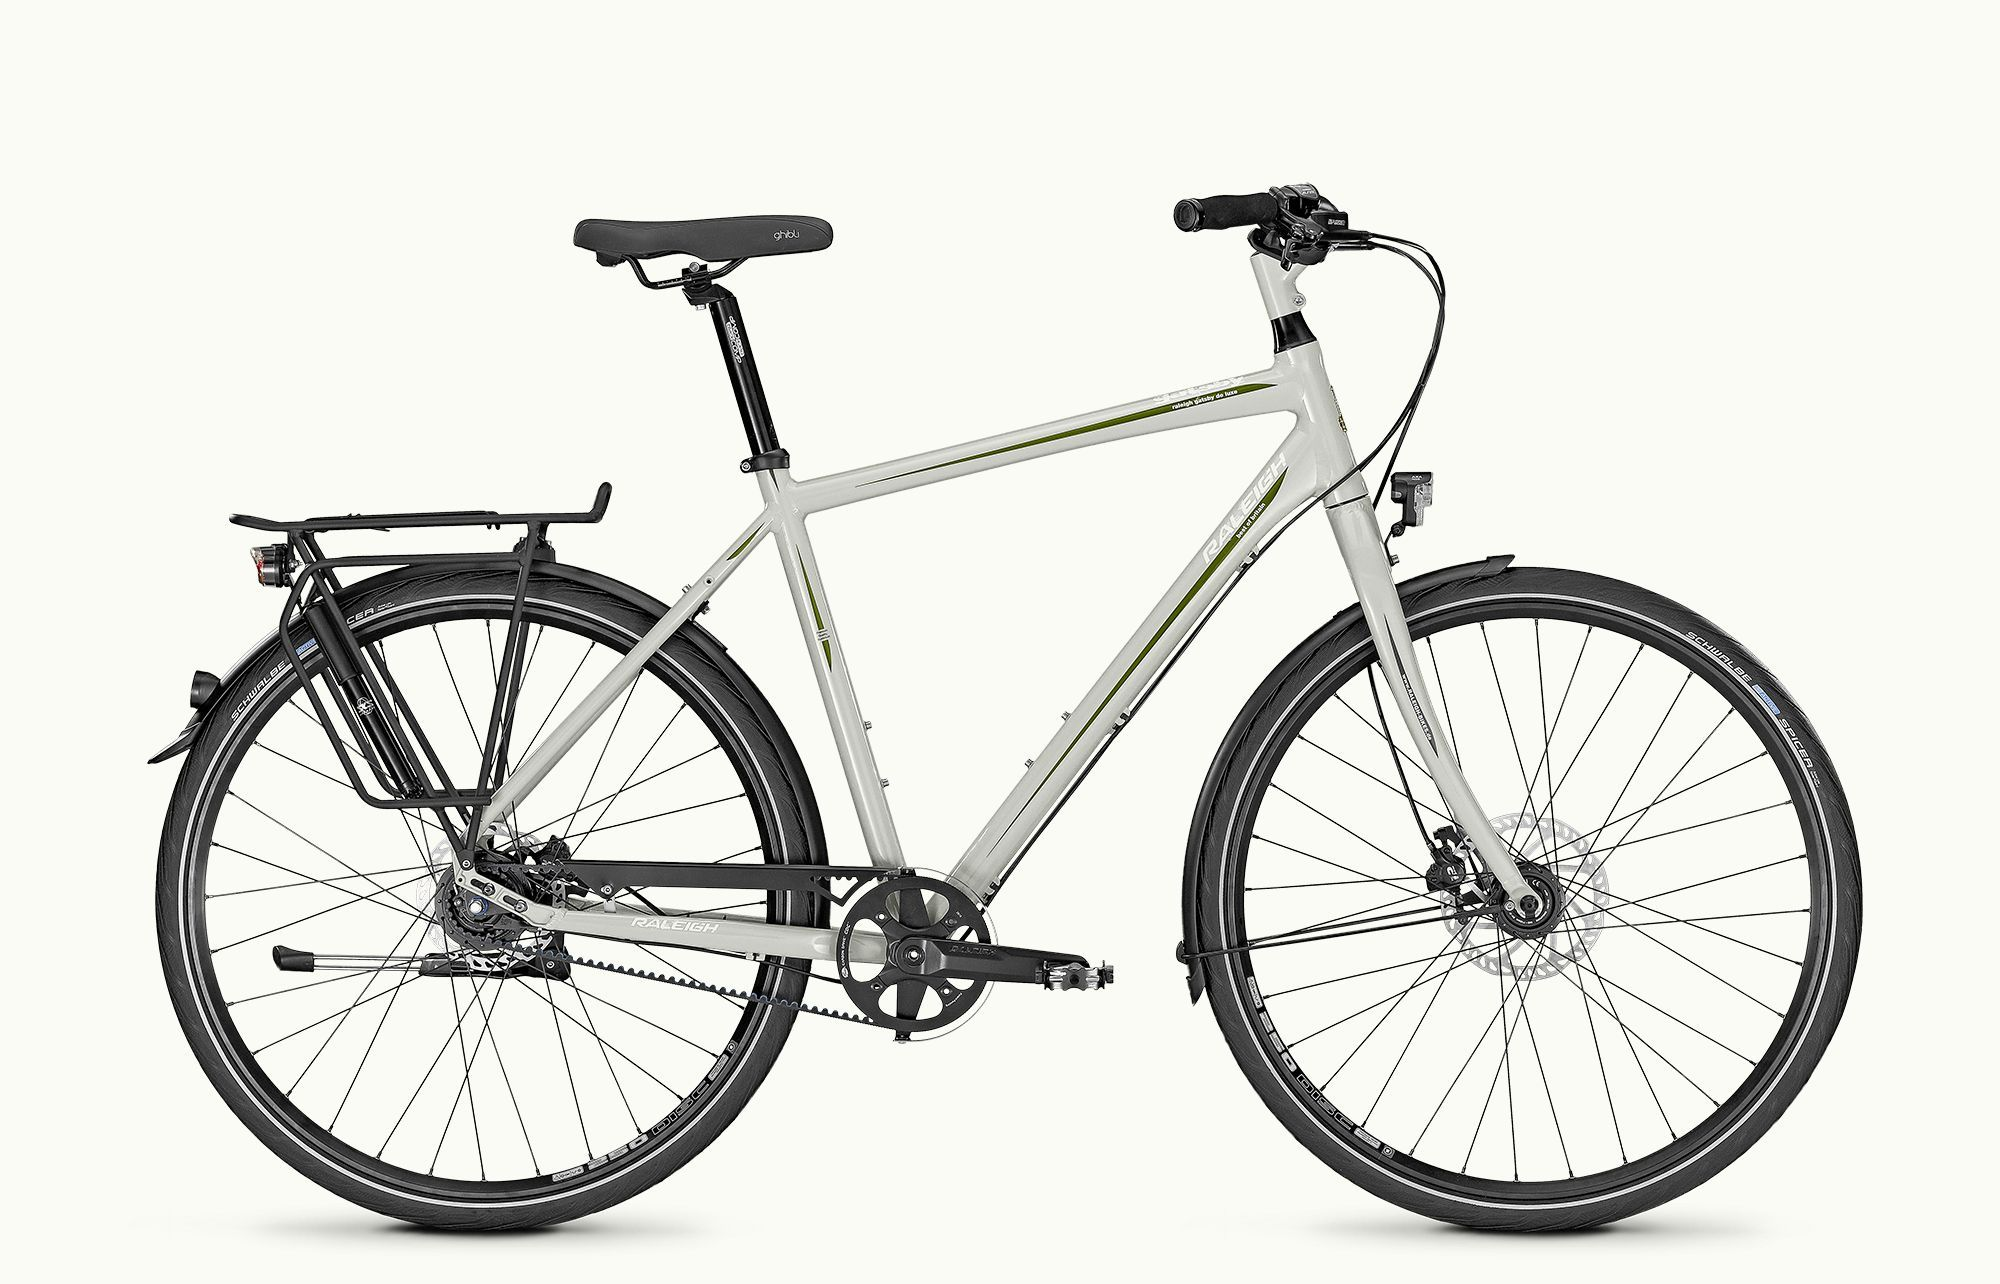 stock photo of my current commuter bike  a raleigh gatsby deluxe 8 speed  made and sold in